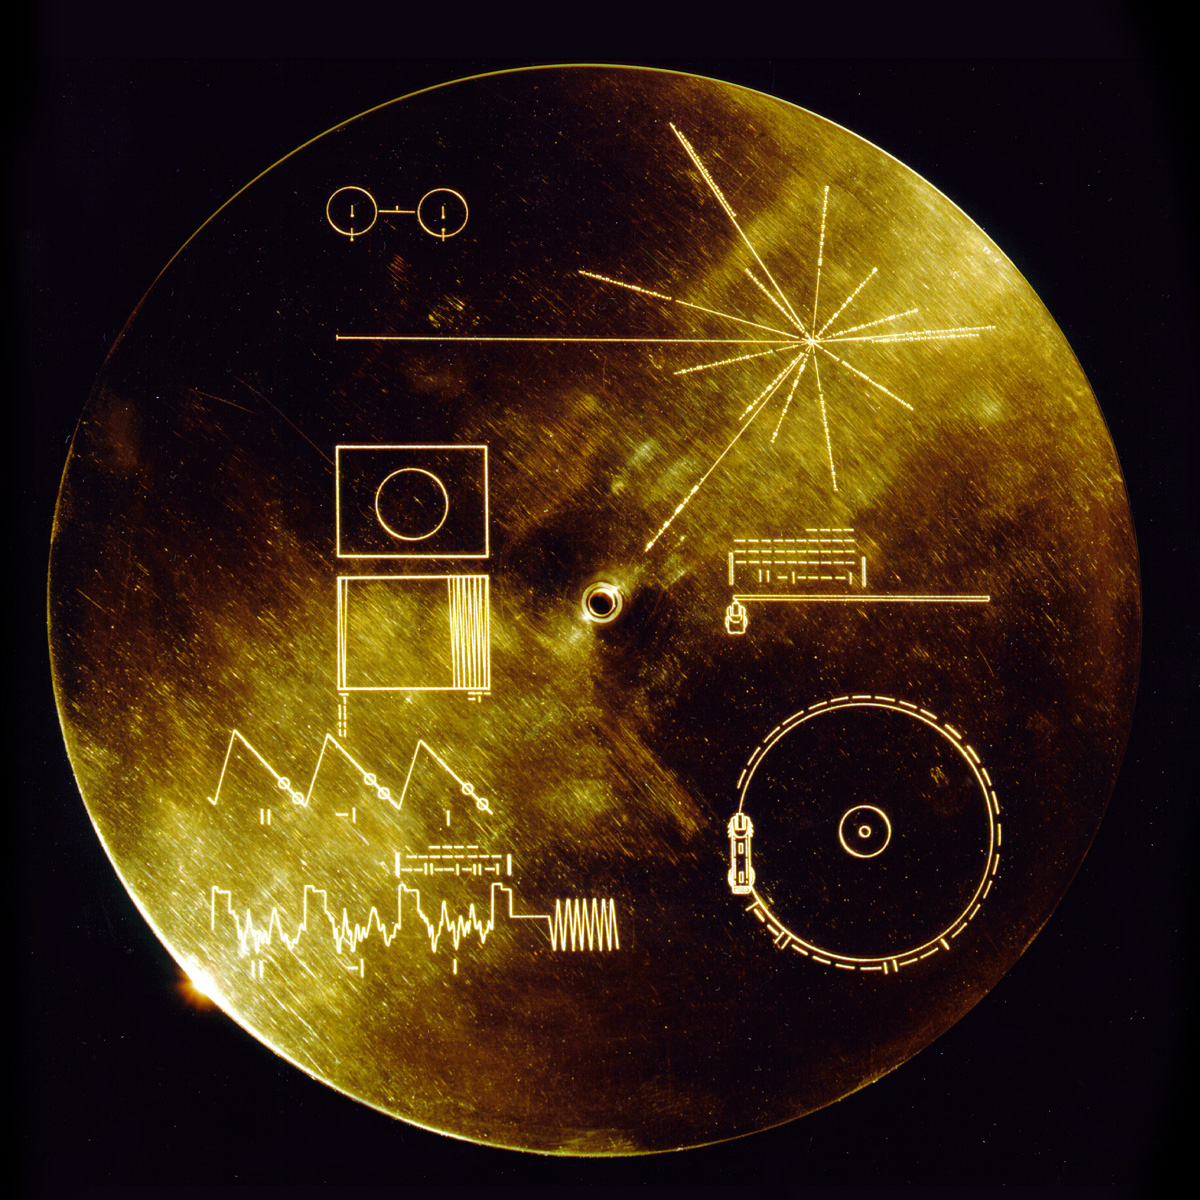 voyager 1 dimensions - photo #36